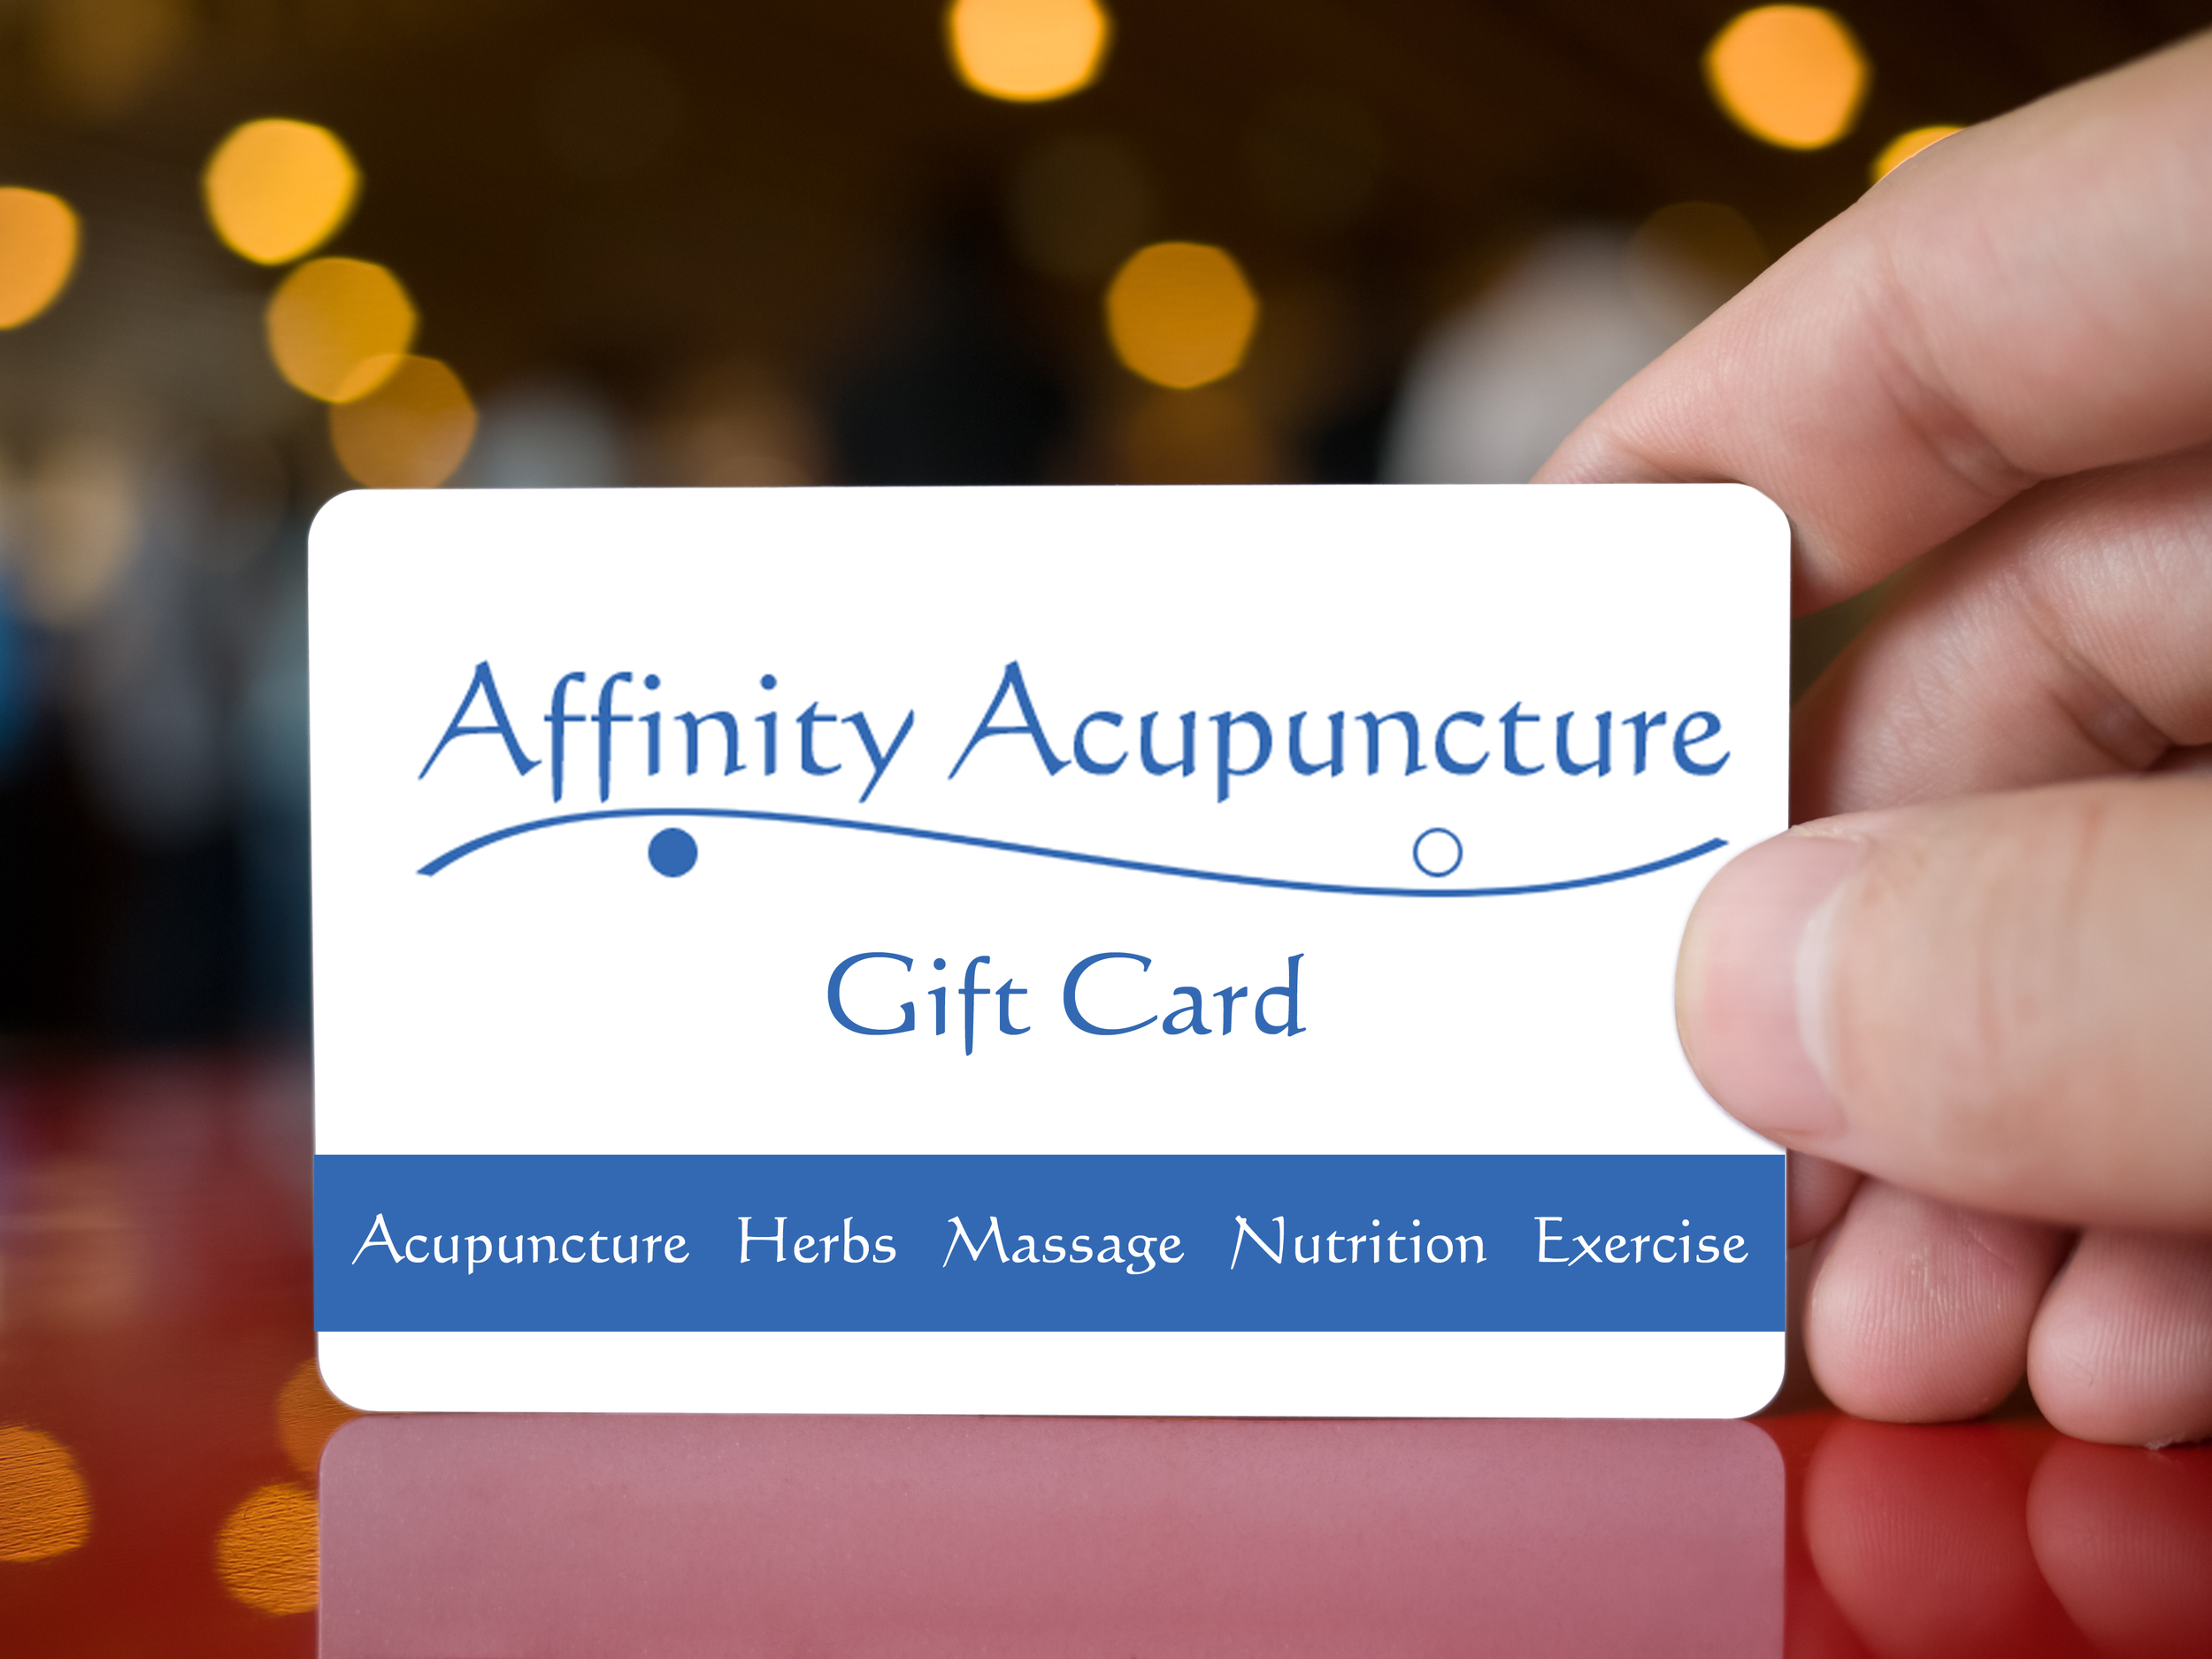 Gift card for acupuncture or massage; birthday, graduation, anniversary present